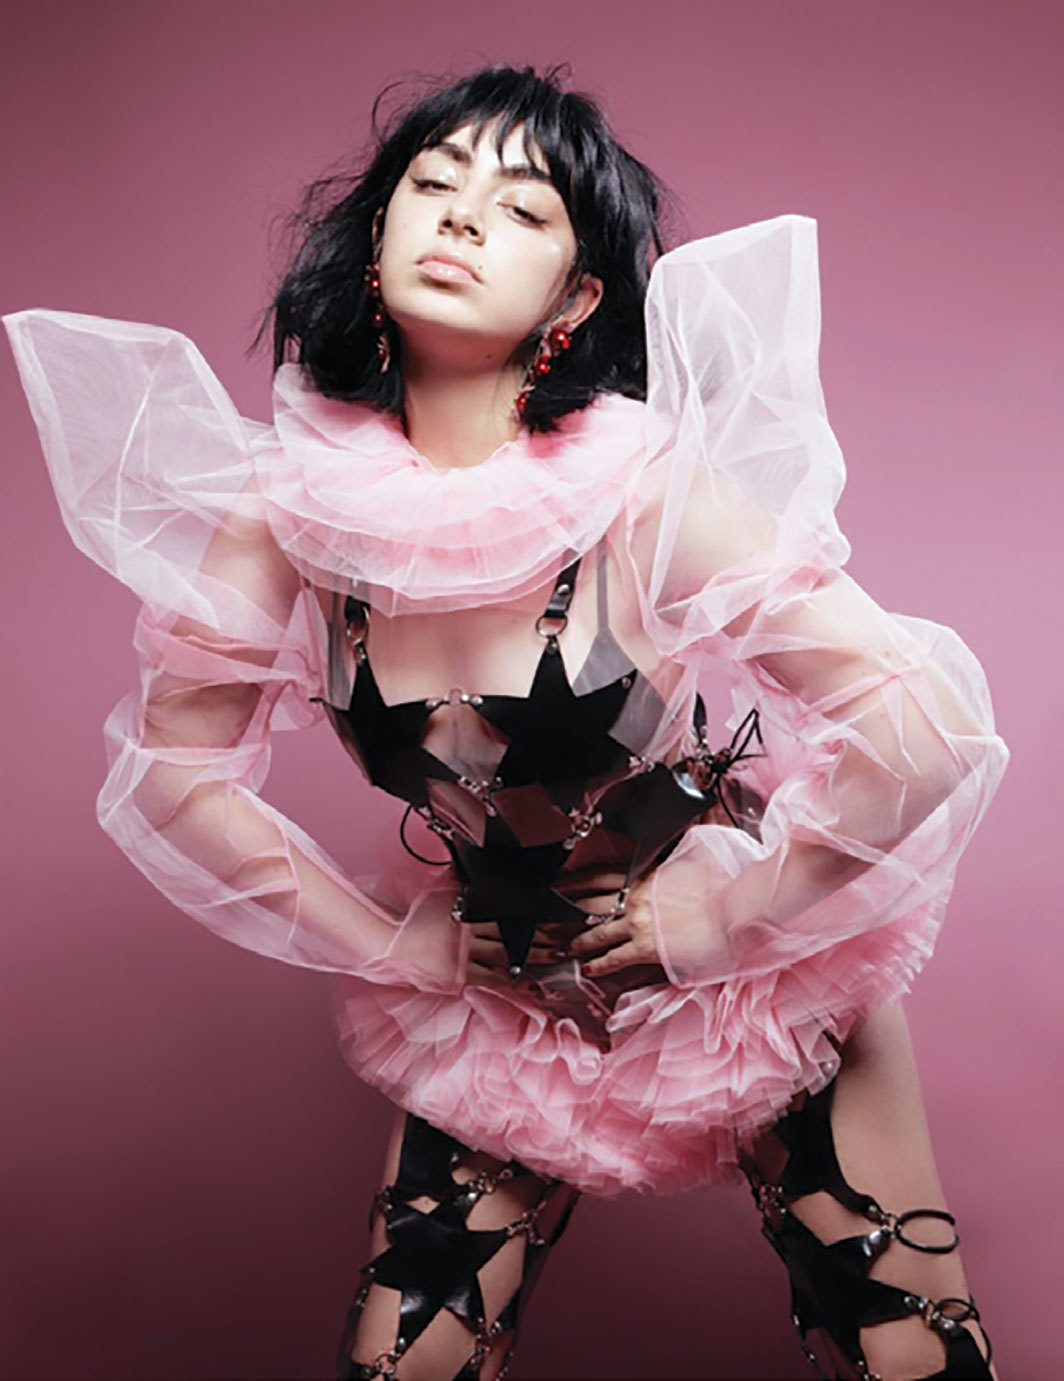 Promotional image for Charli XCX's Pop 2, 2017. Photo: Charlotte Rutherford.